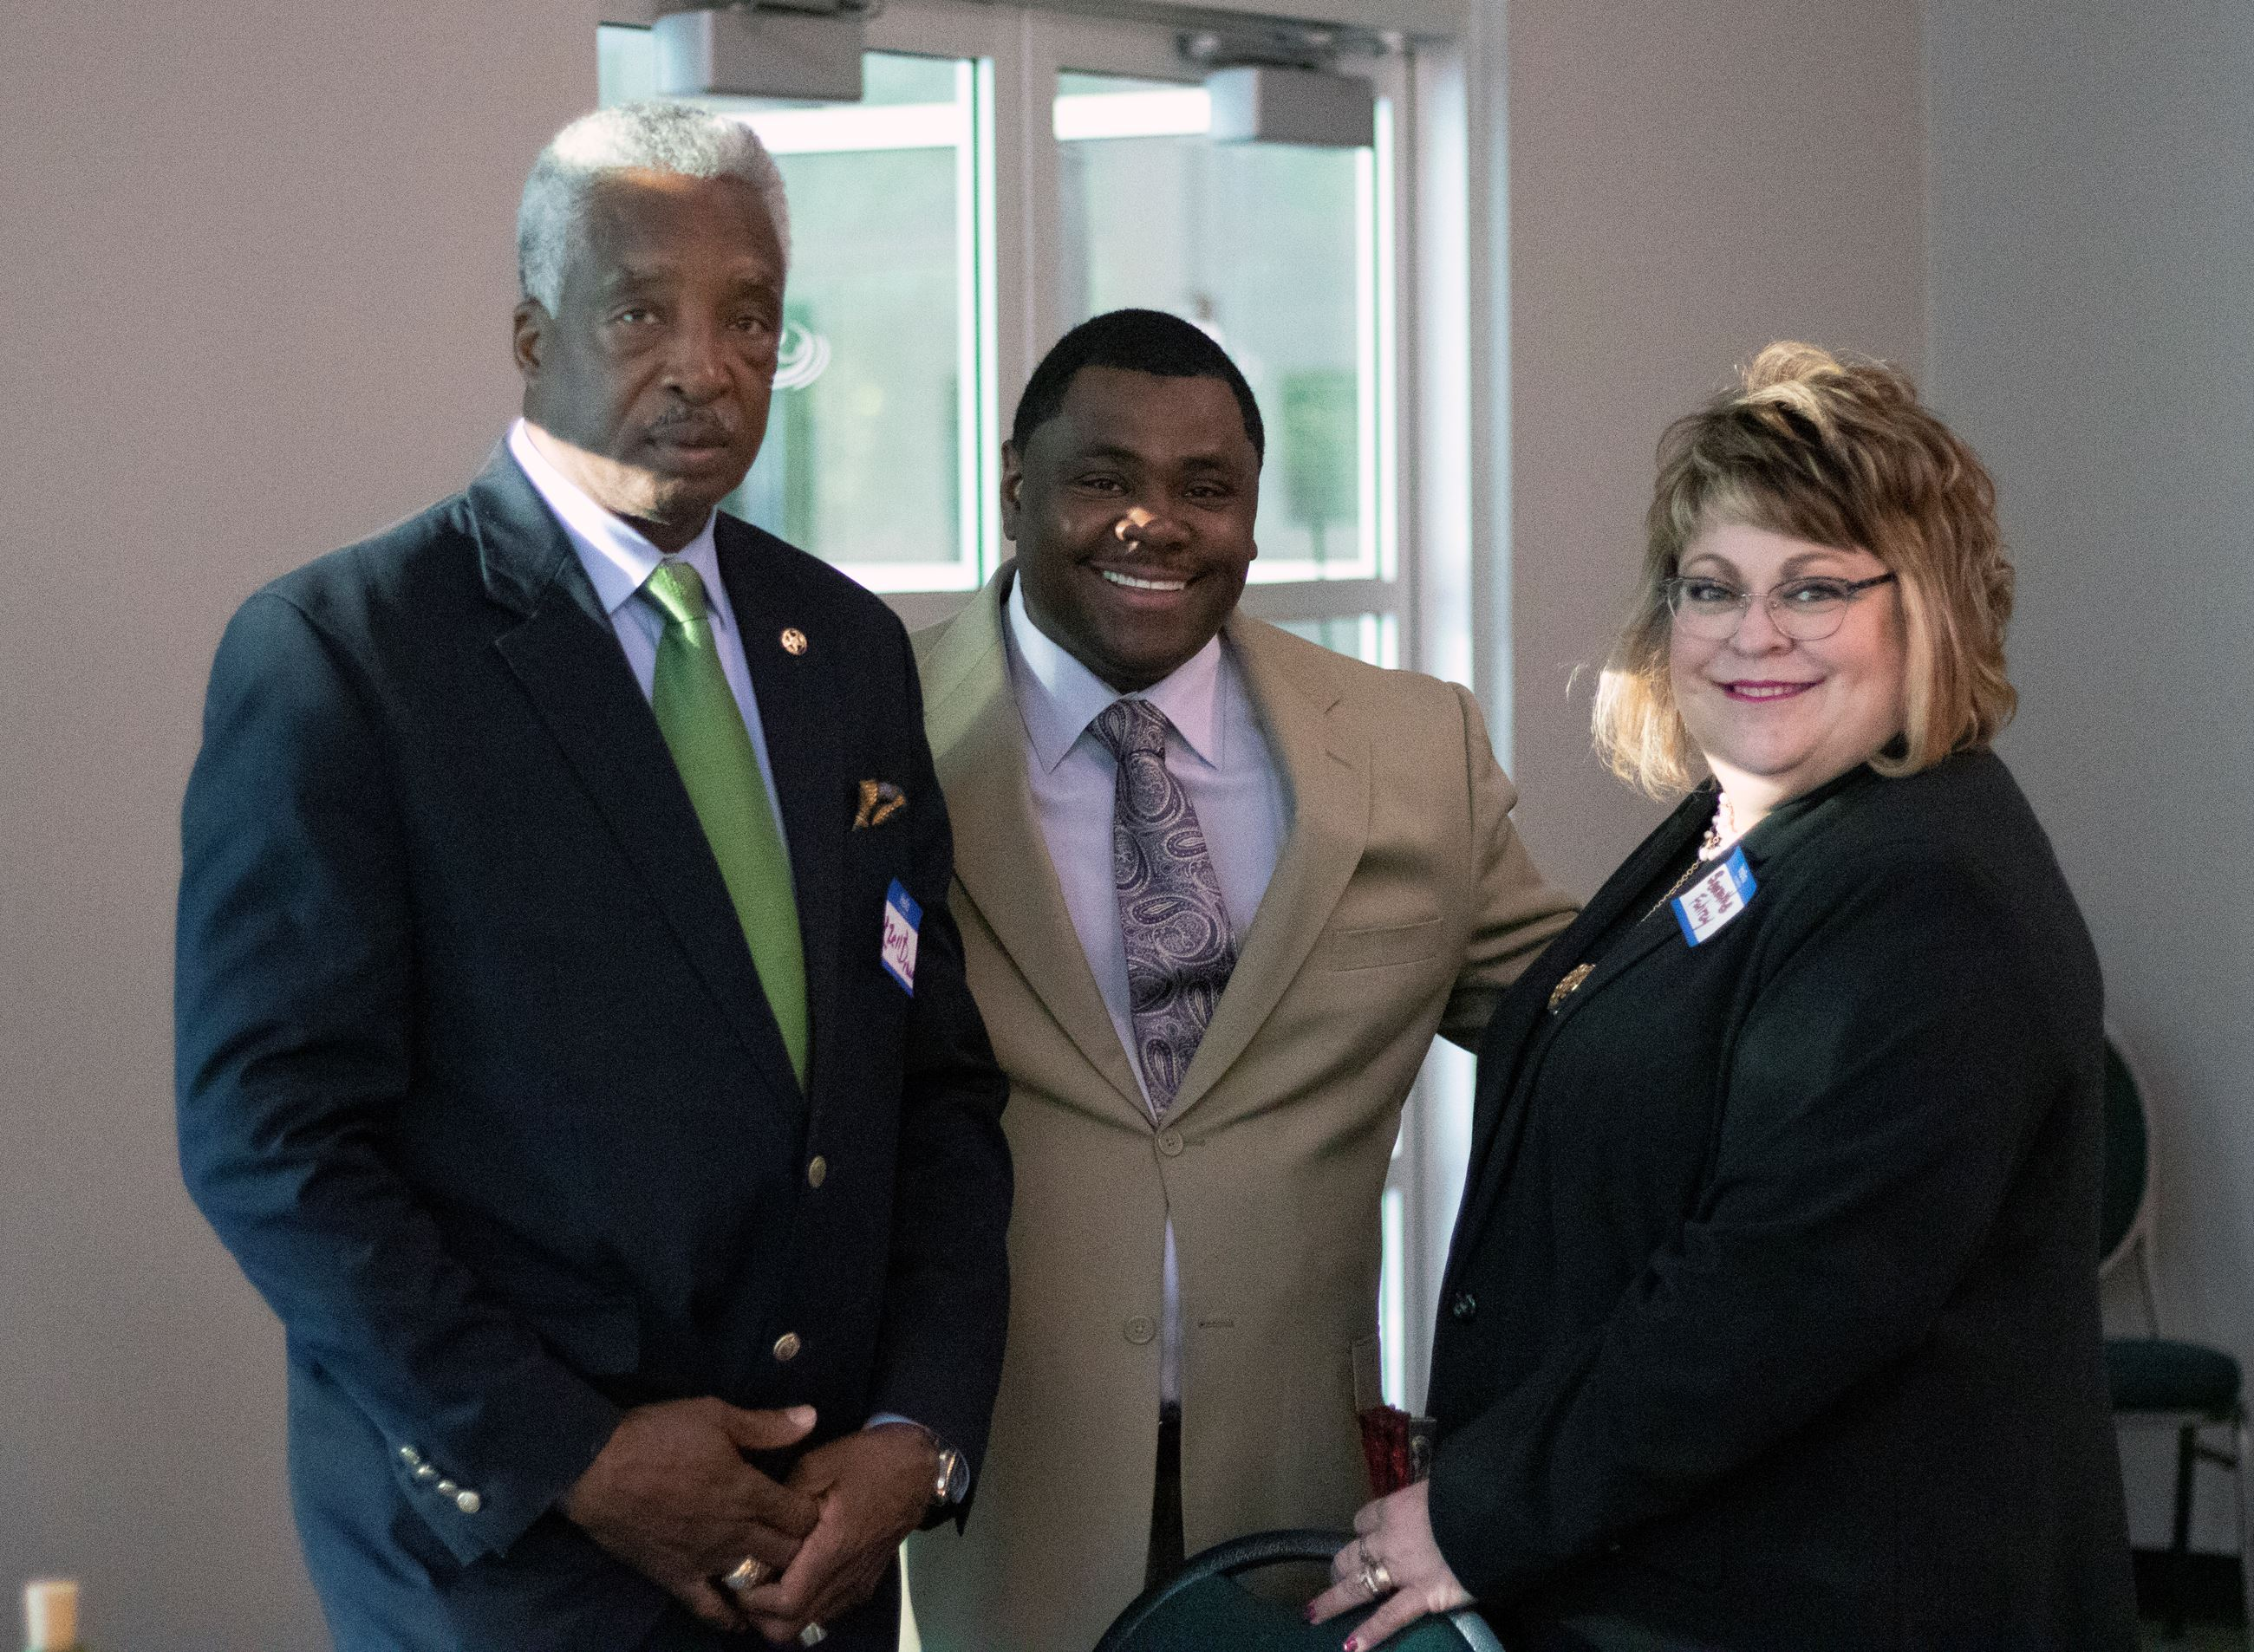 Image of Sheriff Ezell Brown, Chairman Marcello Banes and Superintendent Samantha Fuhrey